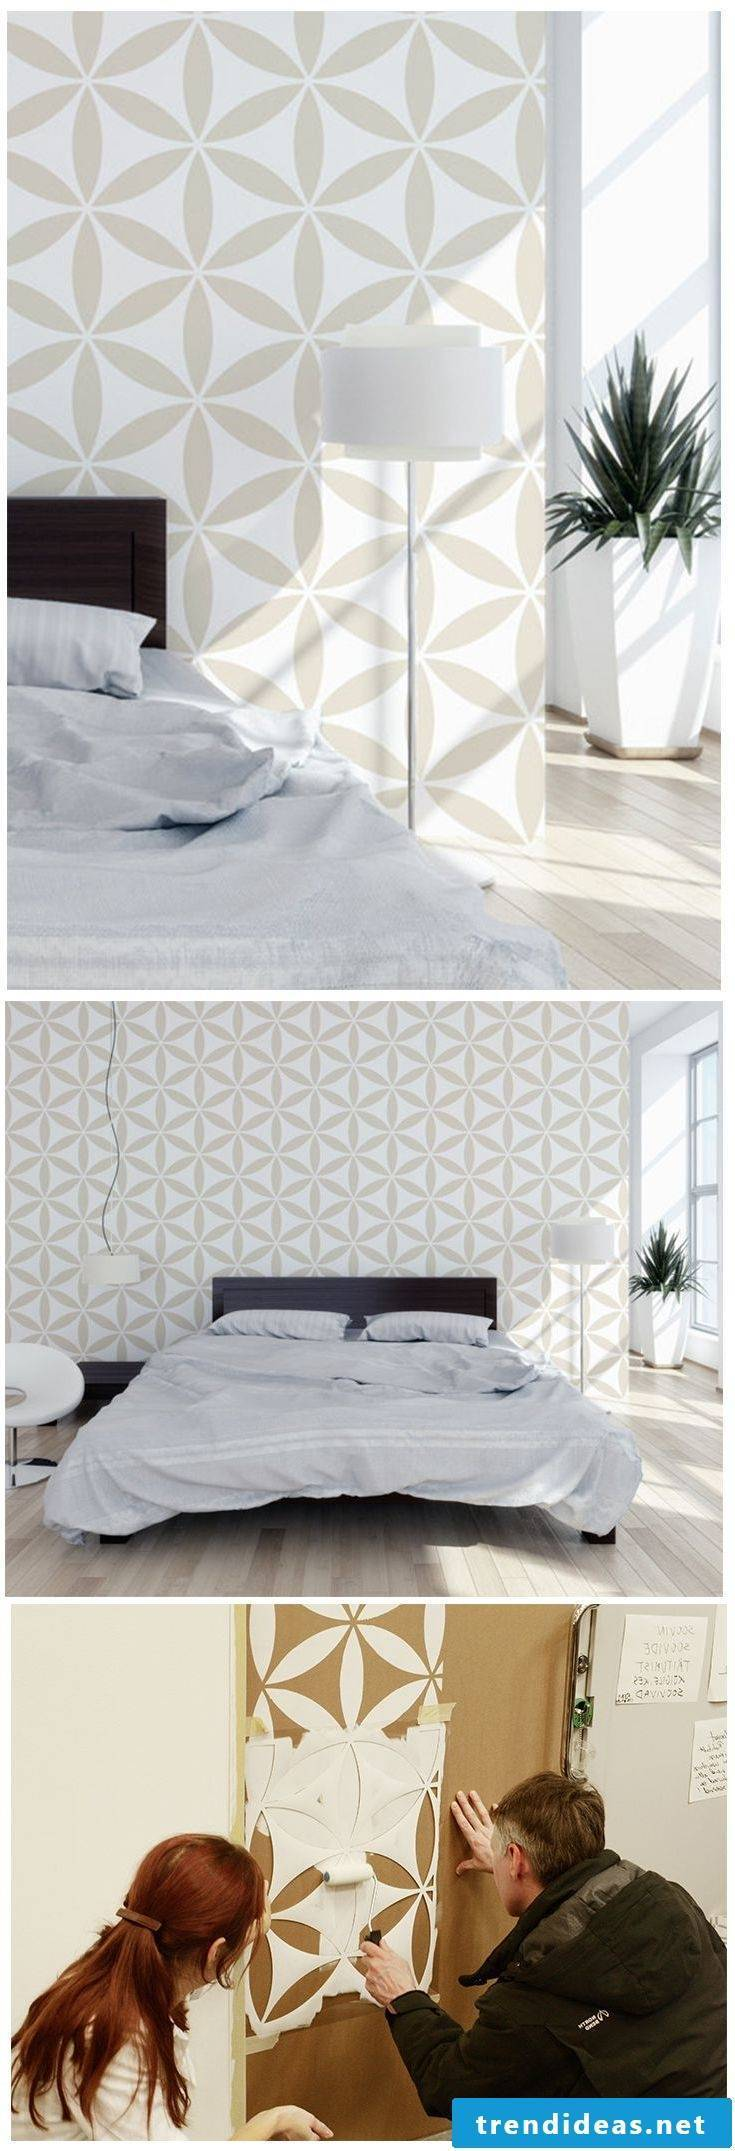 Geometric shapes as a wall design in the bedroom